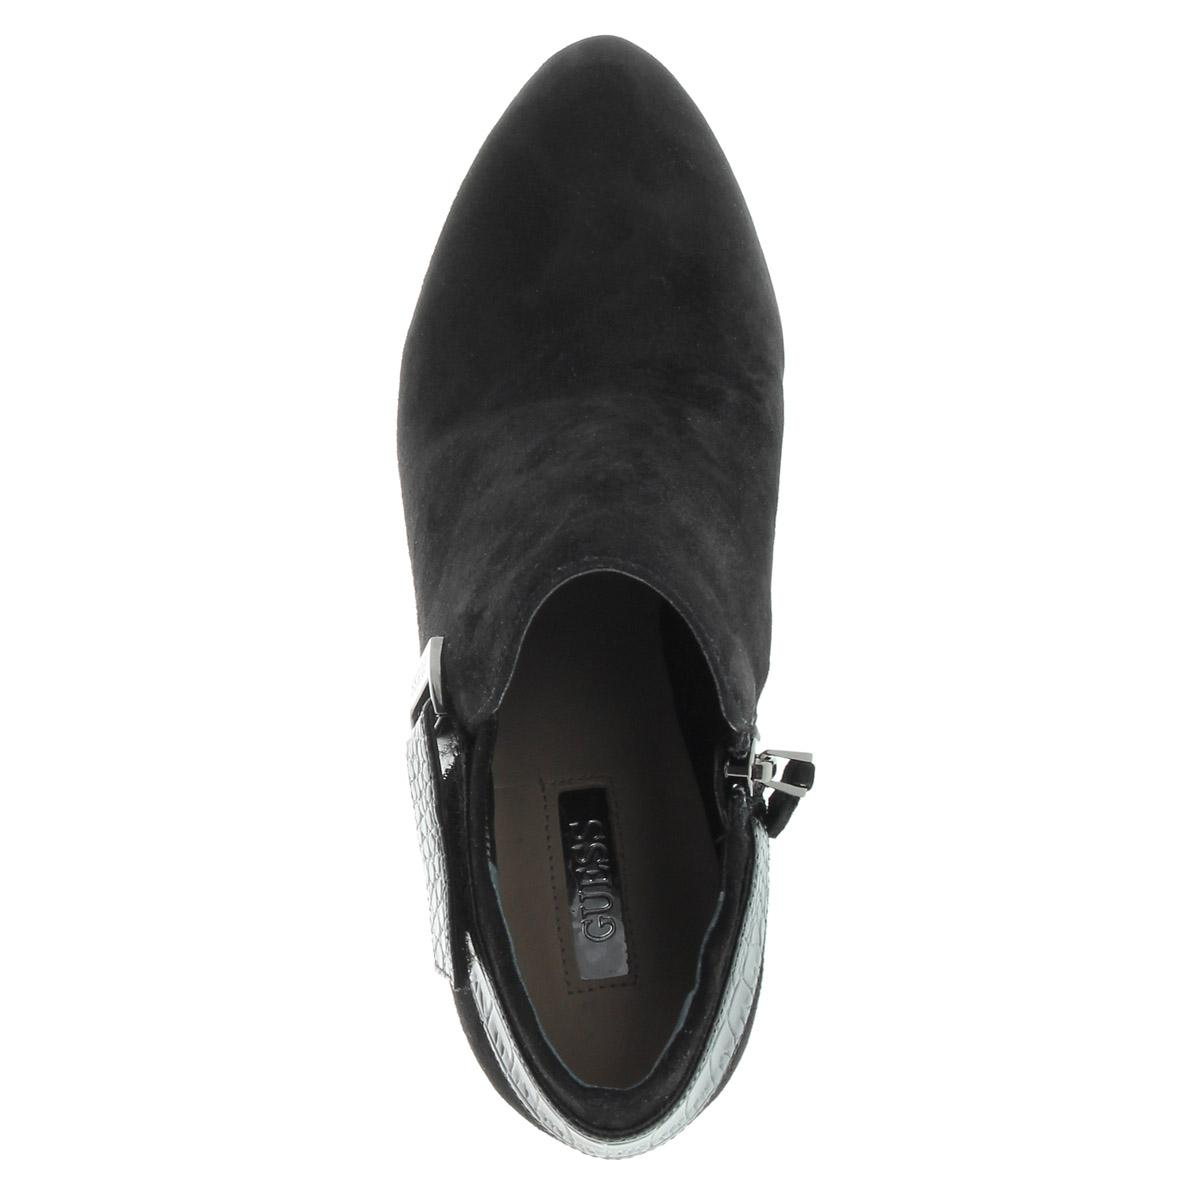 Guess Ankle Boot Suede Black